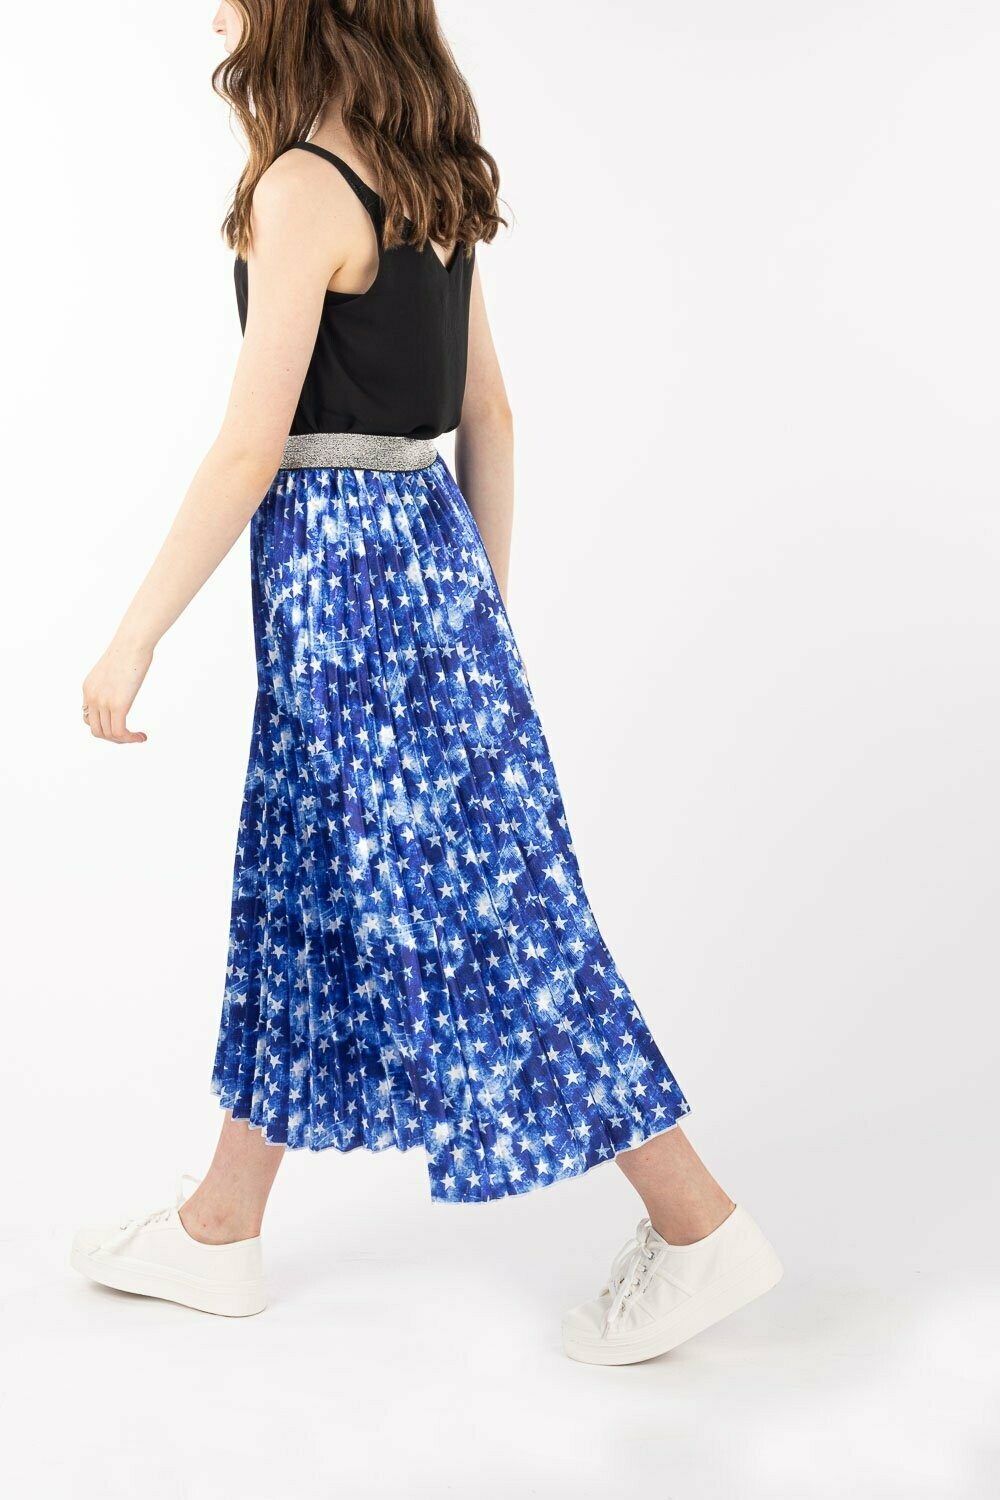 Pleated Skirt - Starry Night - One Size